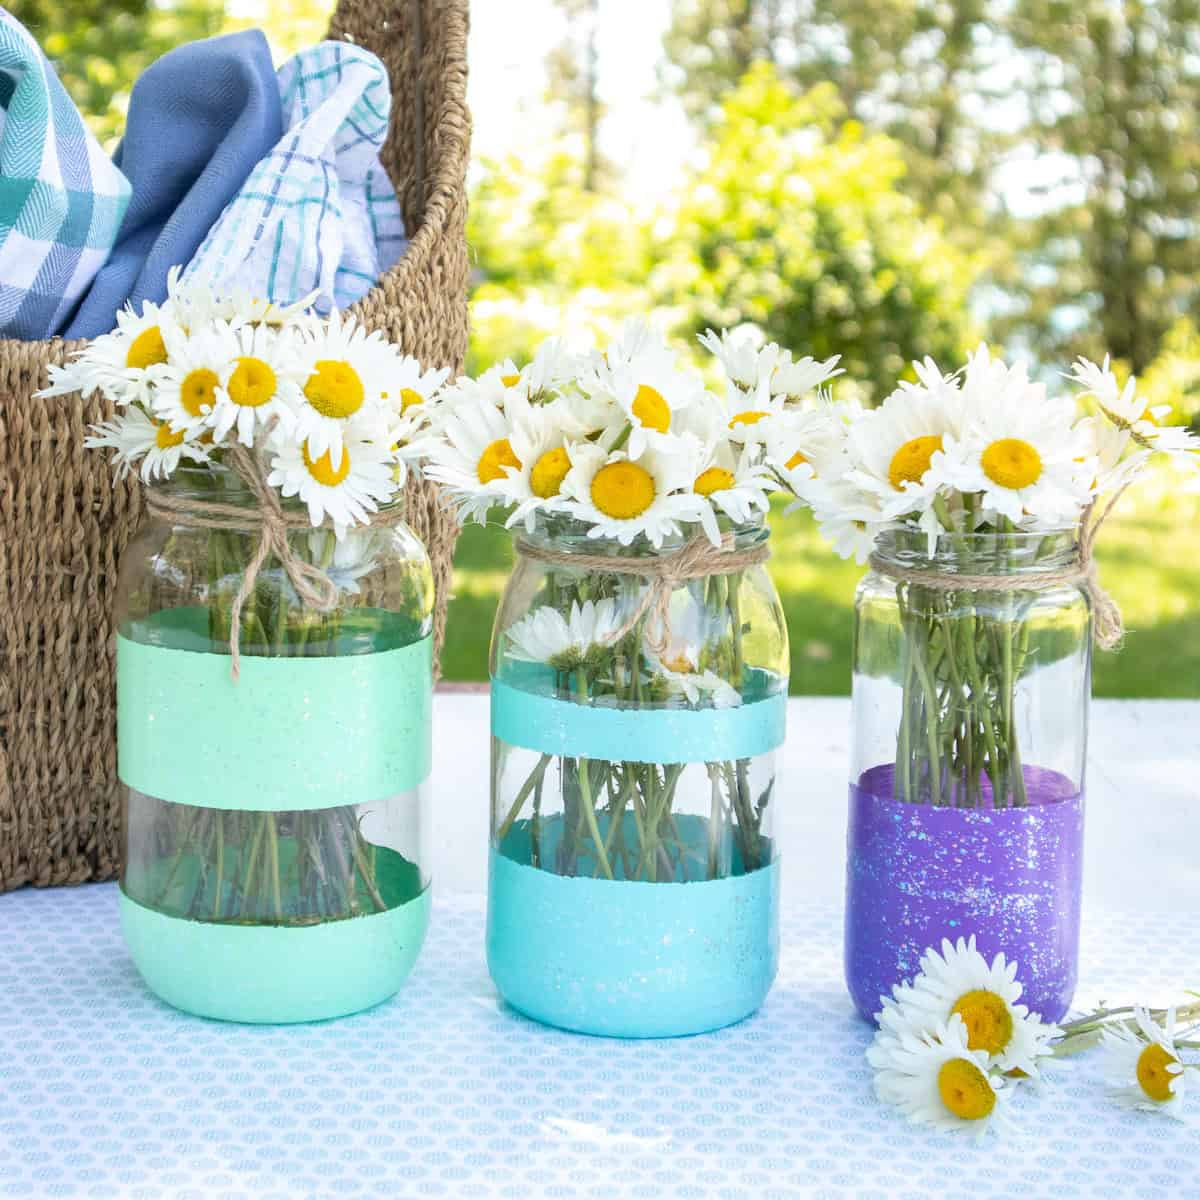 Cool and Creative Hand Painted Jar Vases